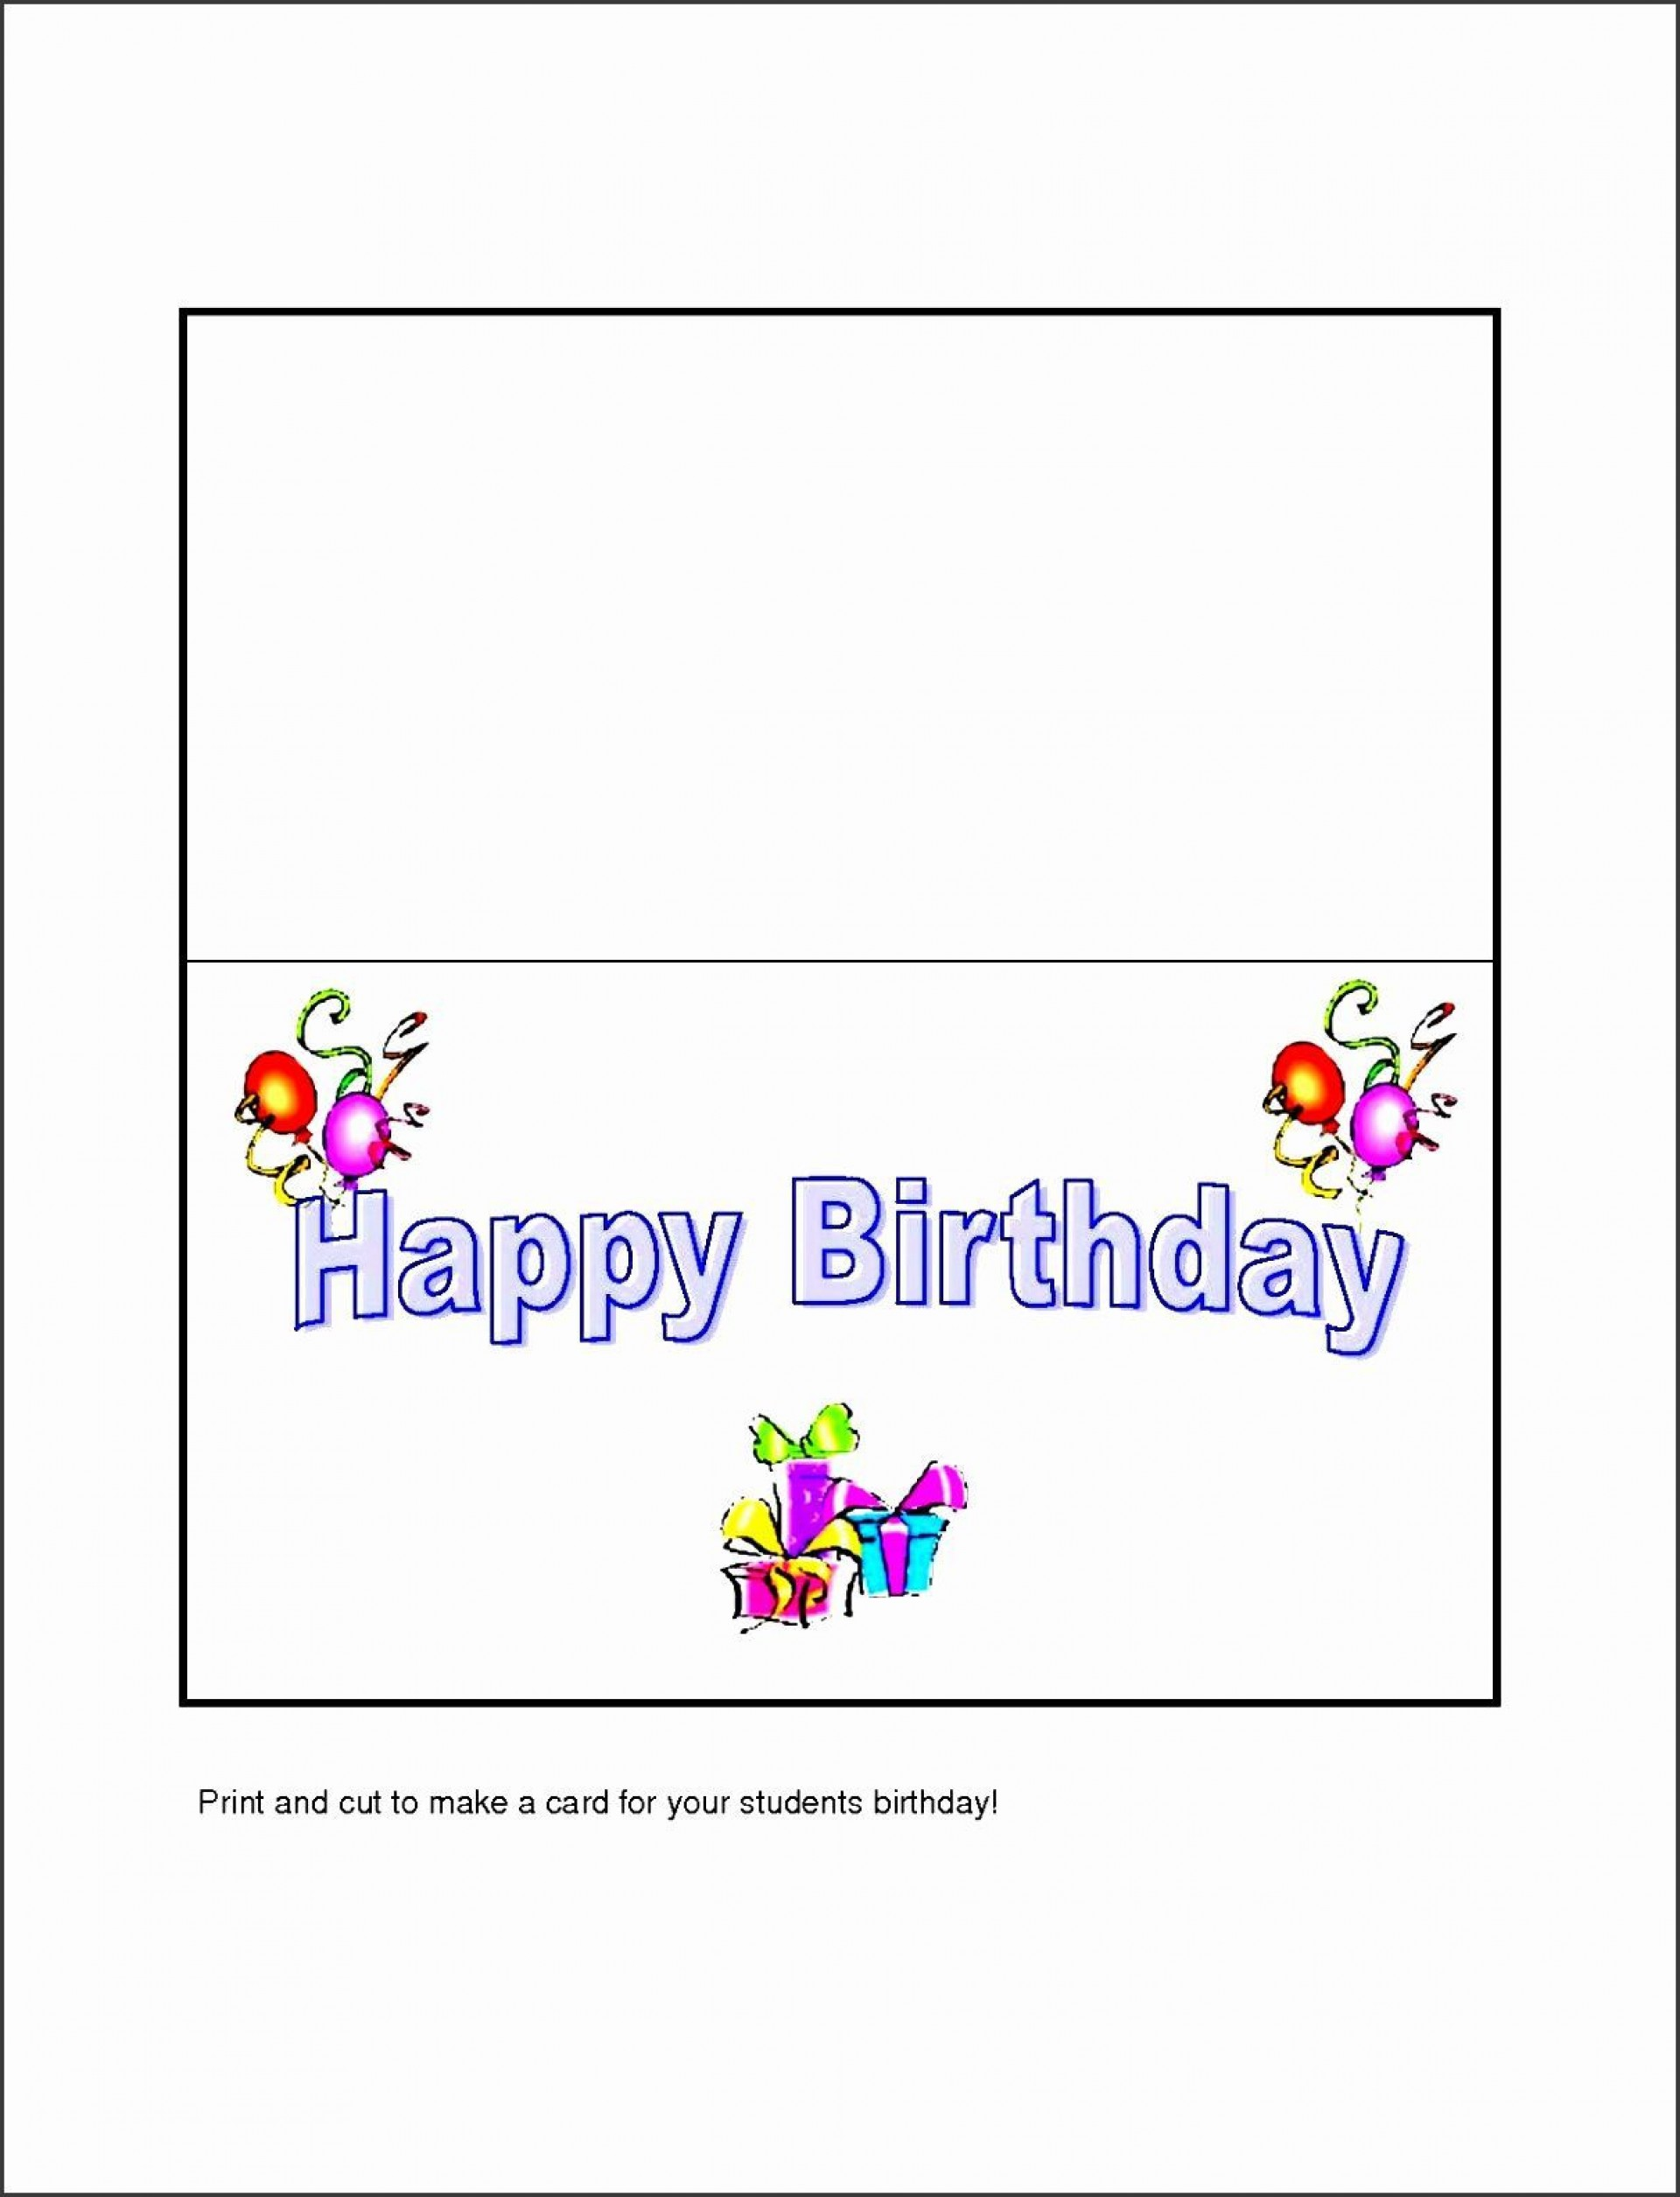 008 Marvelou Blank Birthday Card Template For Word Idea  Free1920